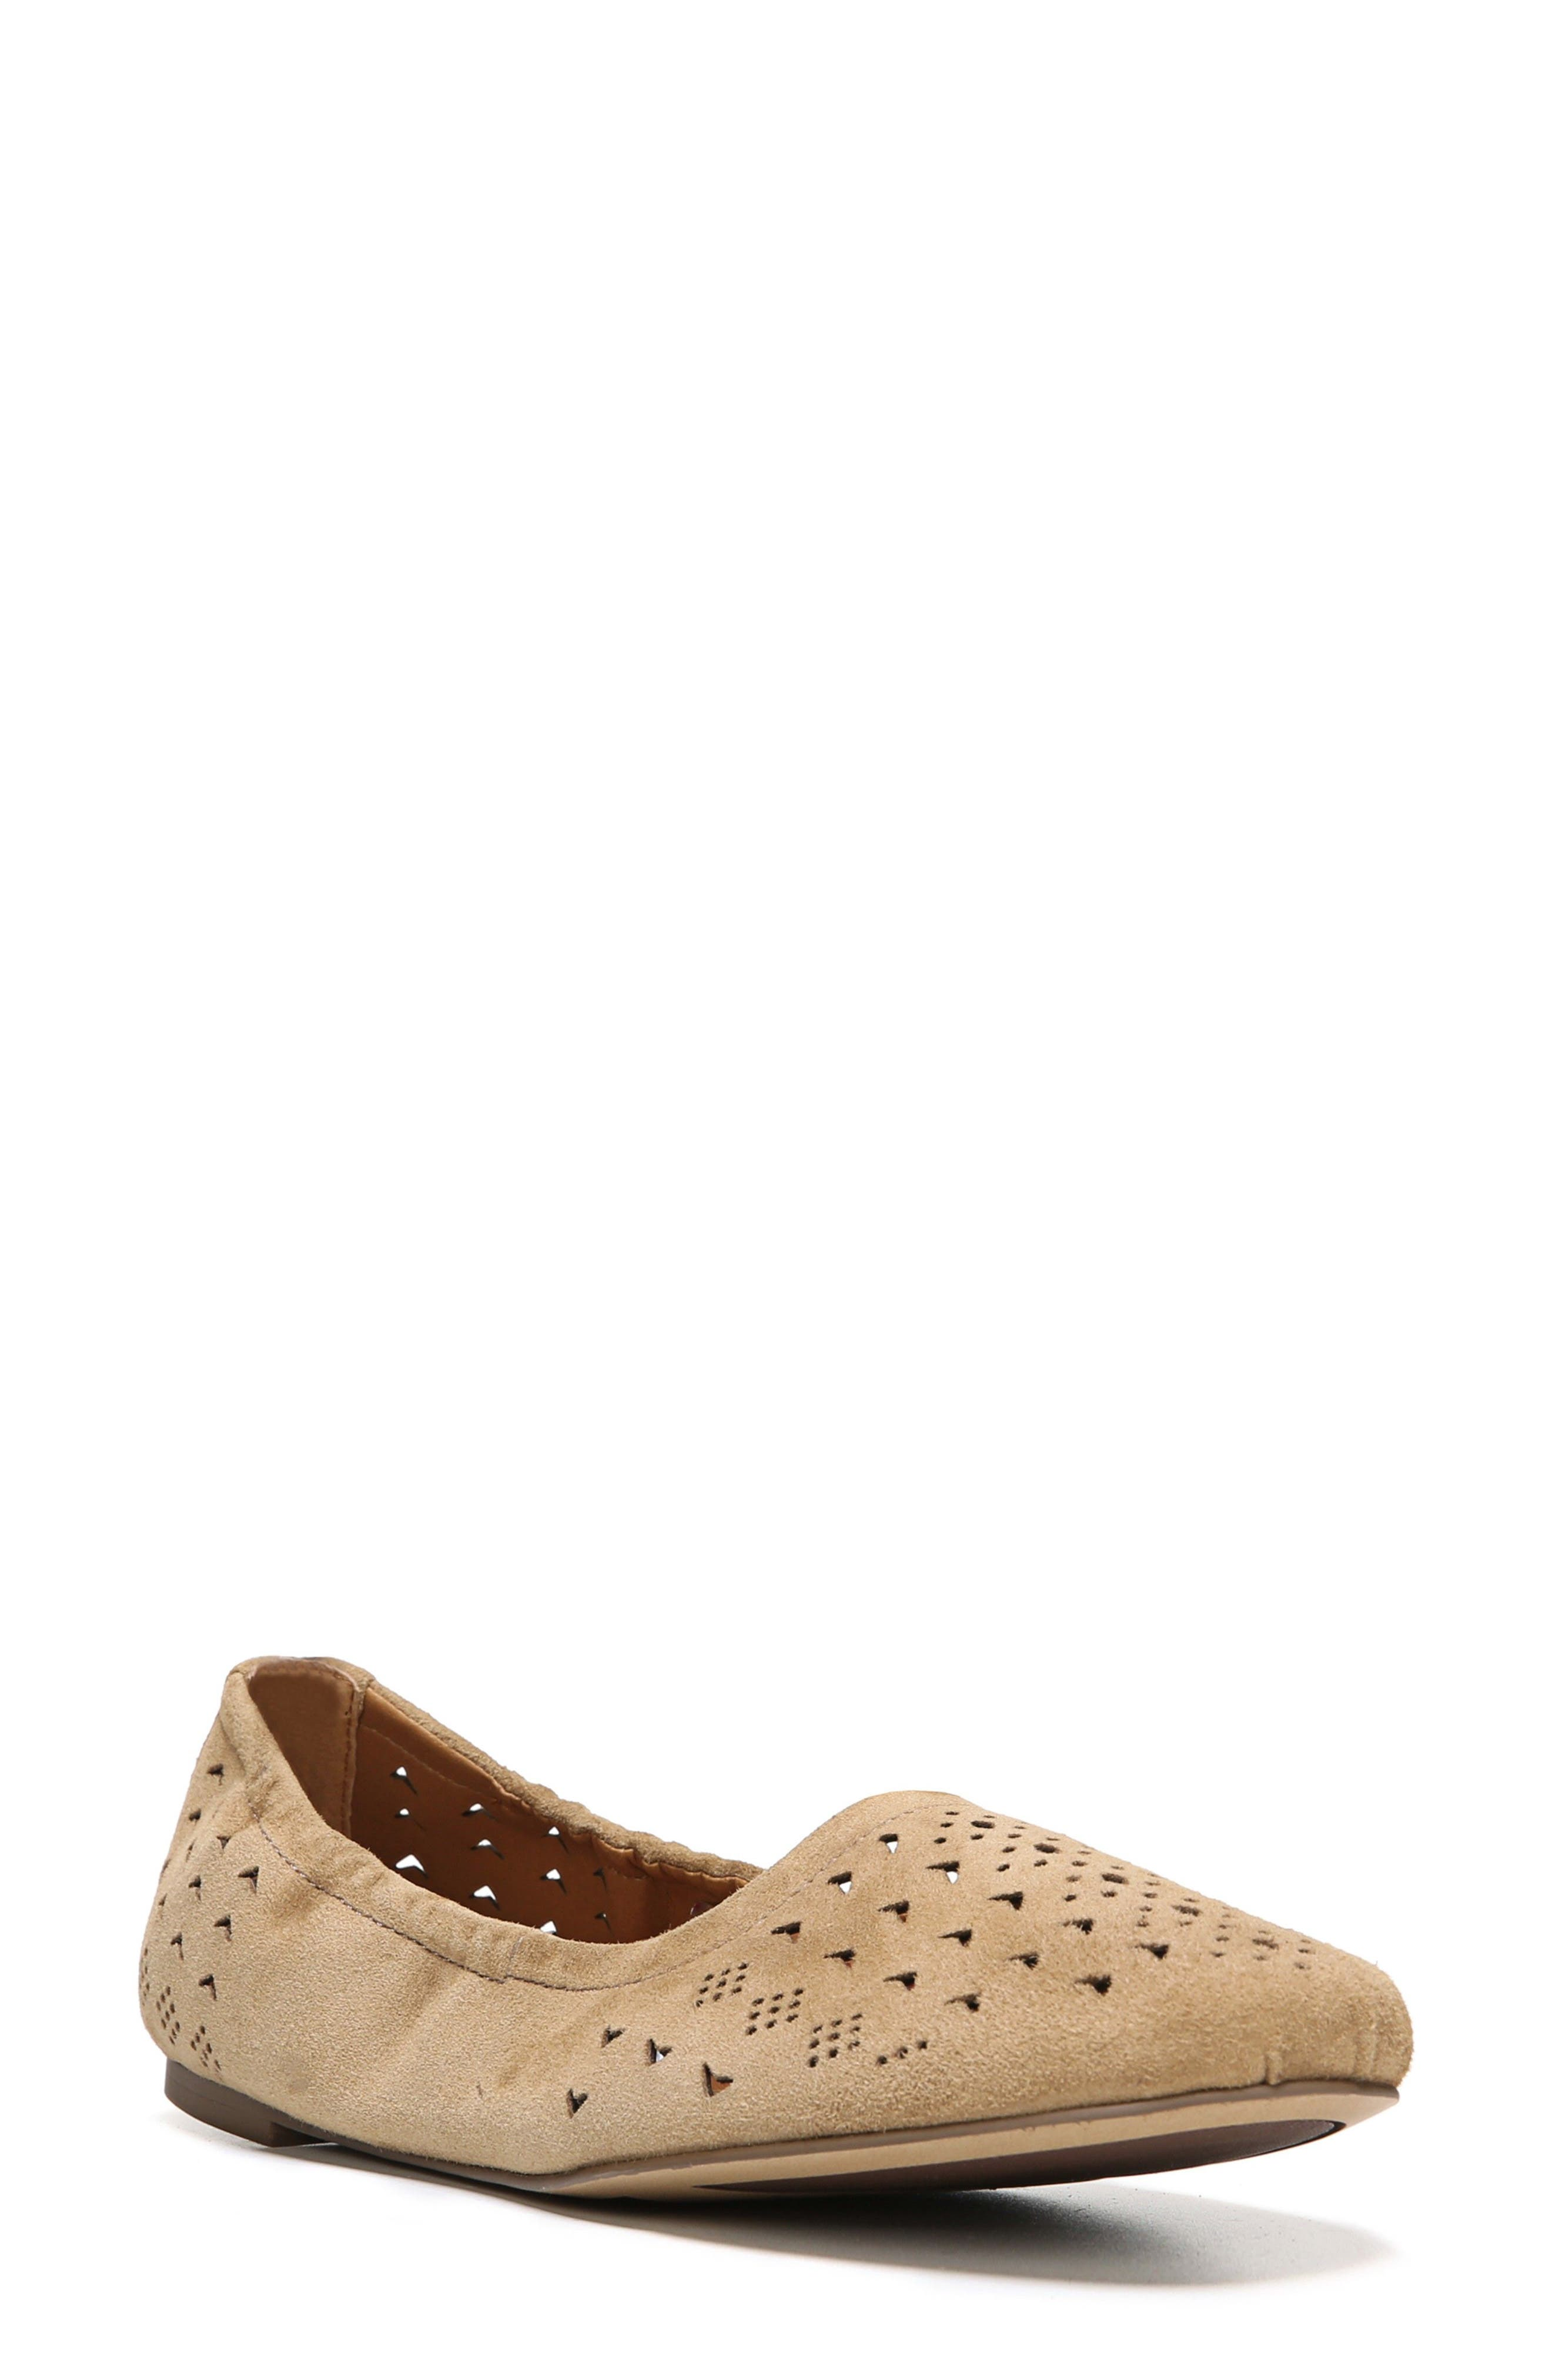 Main Image - SARTO by Franco Sarto Brewer Perforated Ballet Flat (Women)